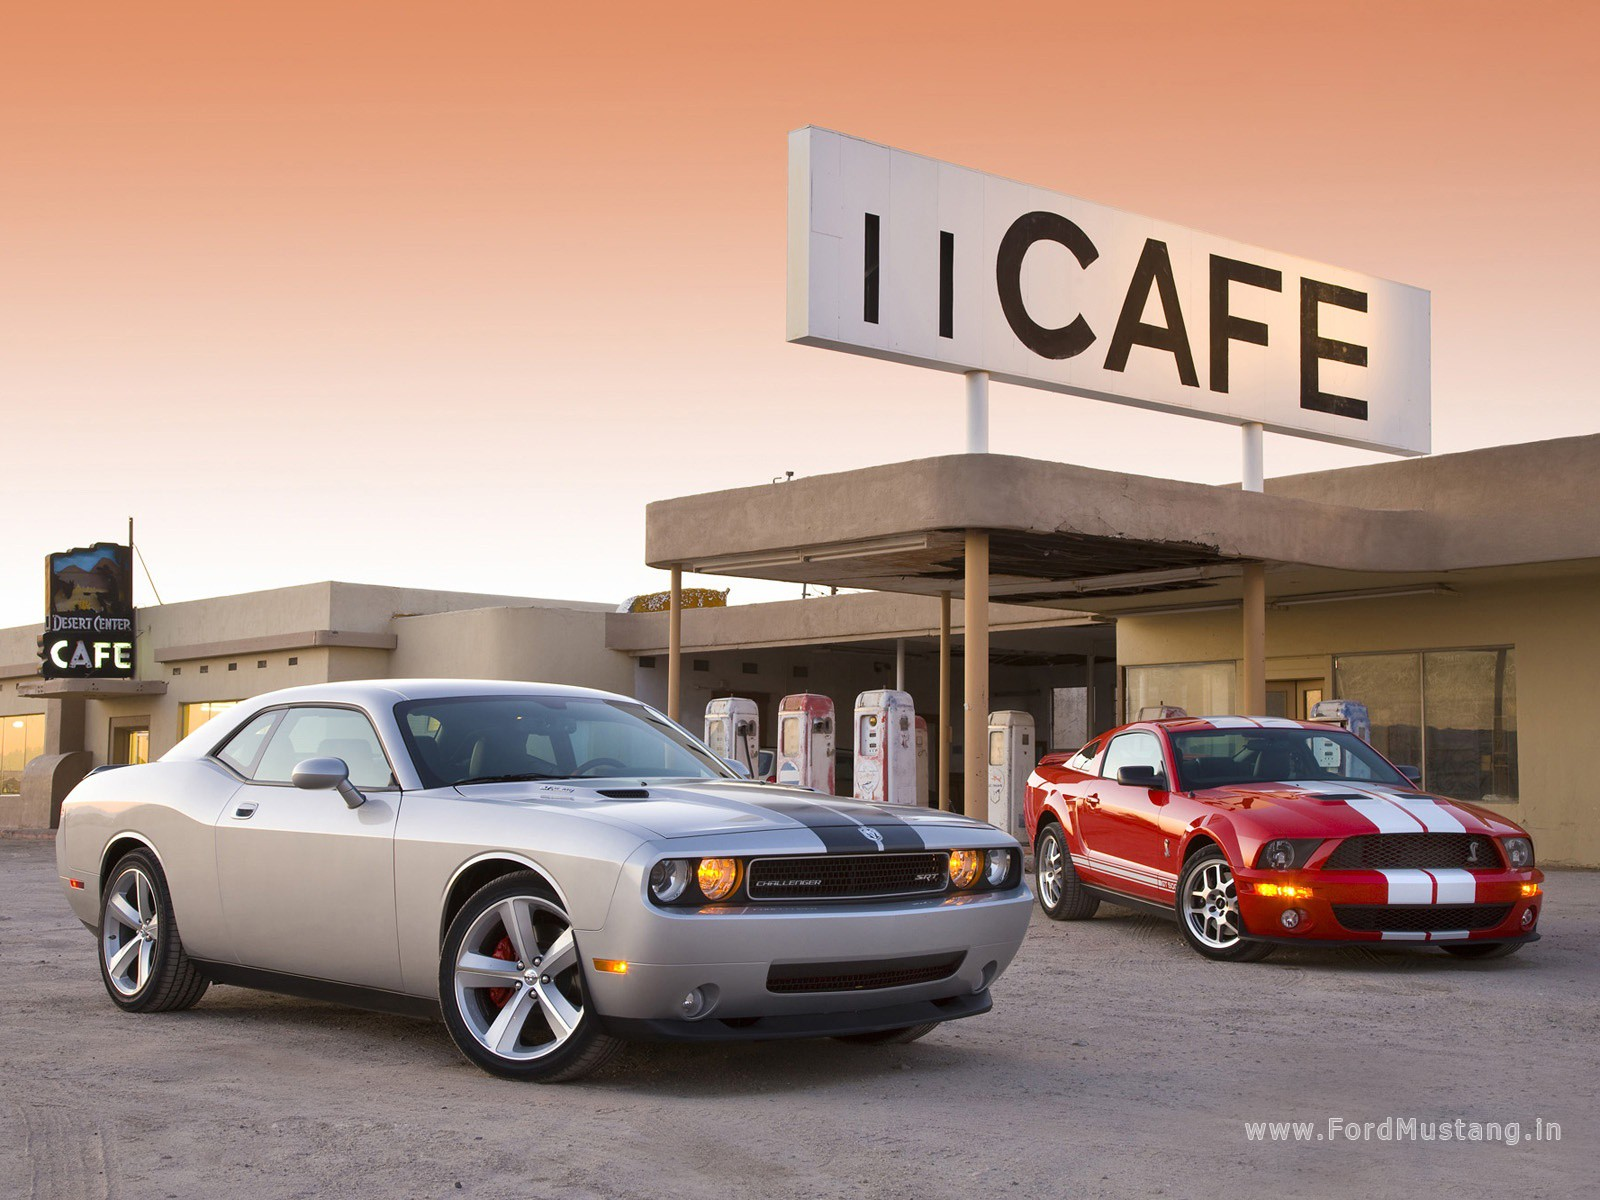 Dodge Challenger Srt8 2008 Vs Ford Mustang Shelby Gt500